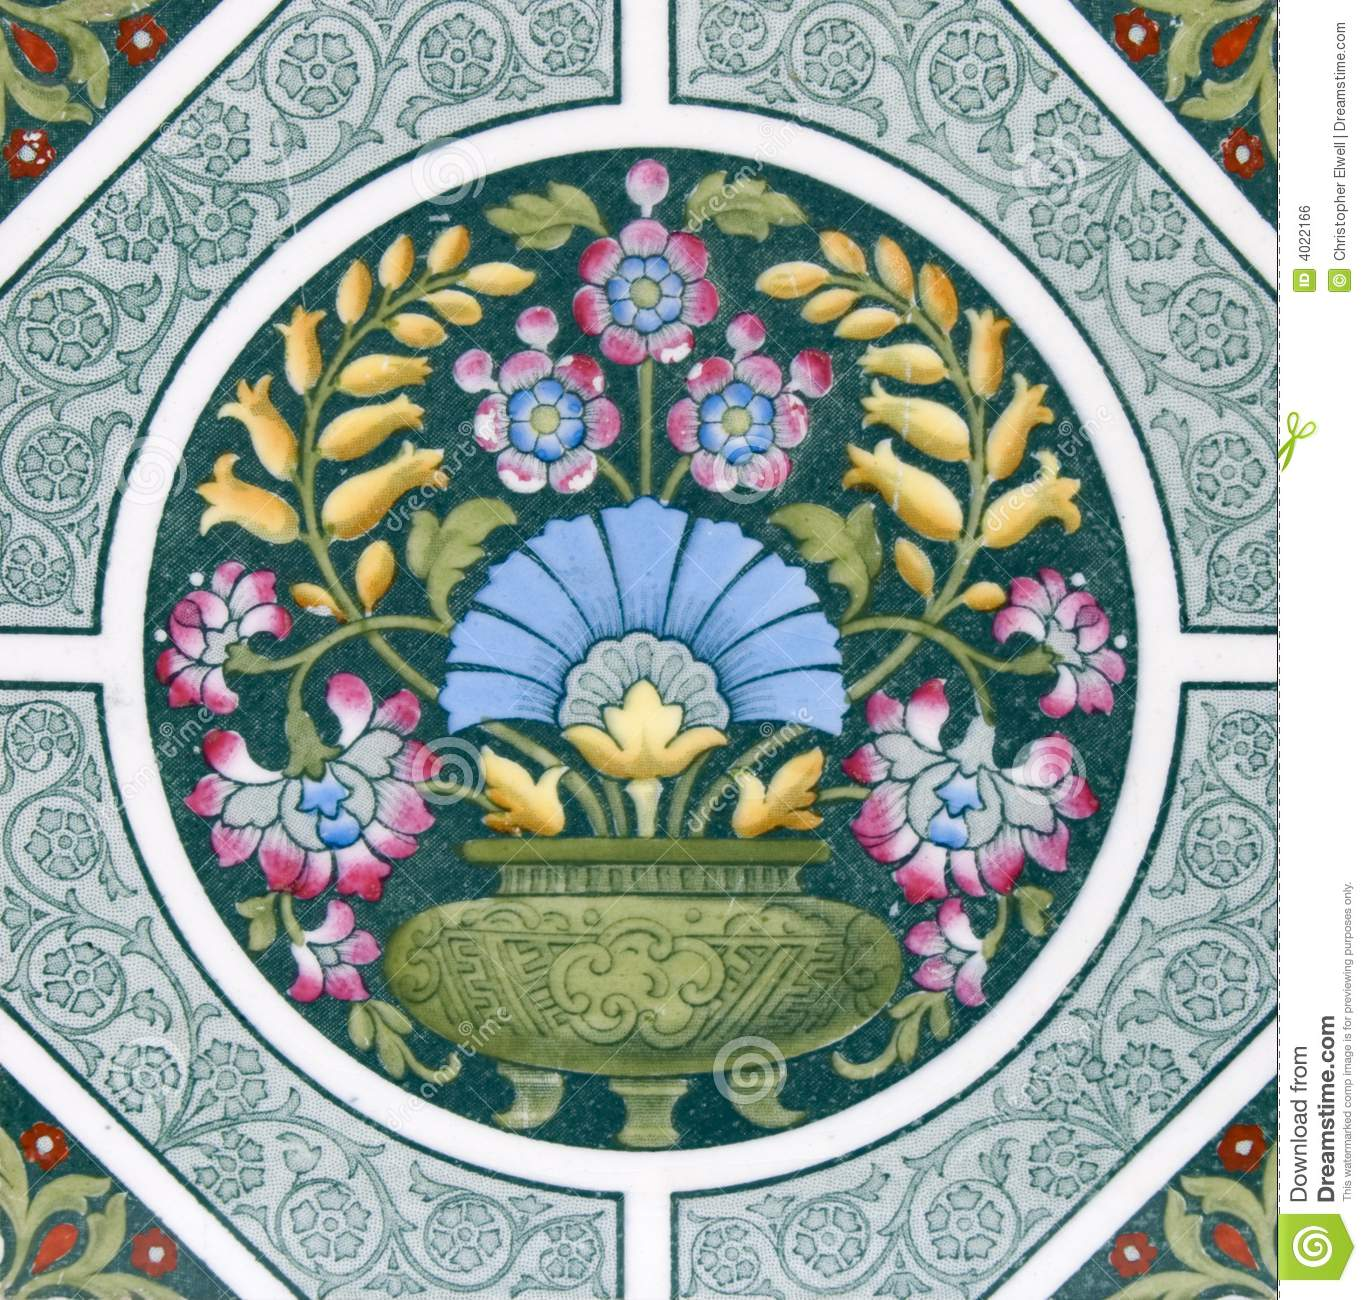 Arts and crafts tiles - Antique Arts Crafts Tile Royalty Free Stock Image